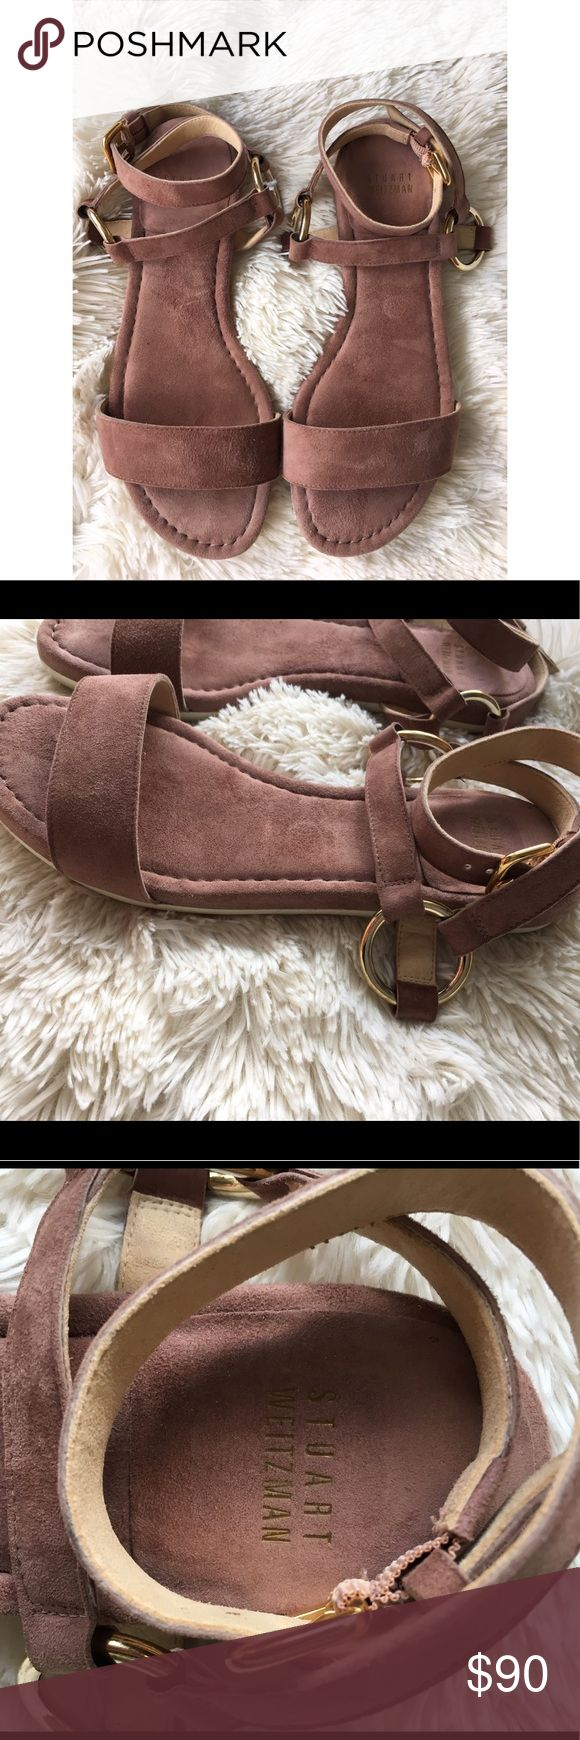 Stuart Weitzman Ringo suede sandals Gorgeous pair of sandals by Stuart Weitzman. Taupe suede with gold hardware accents and rubber soles. The strap wraps around ankle & buckles. These are in excellent condition. Only worn a couple times. Size 7. Stuart Weitzman Shoes Heels